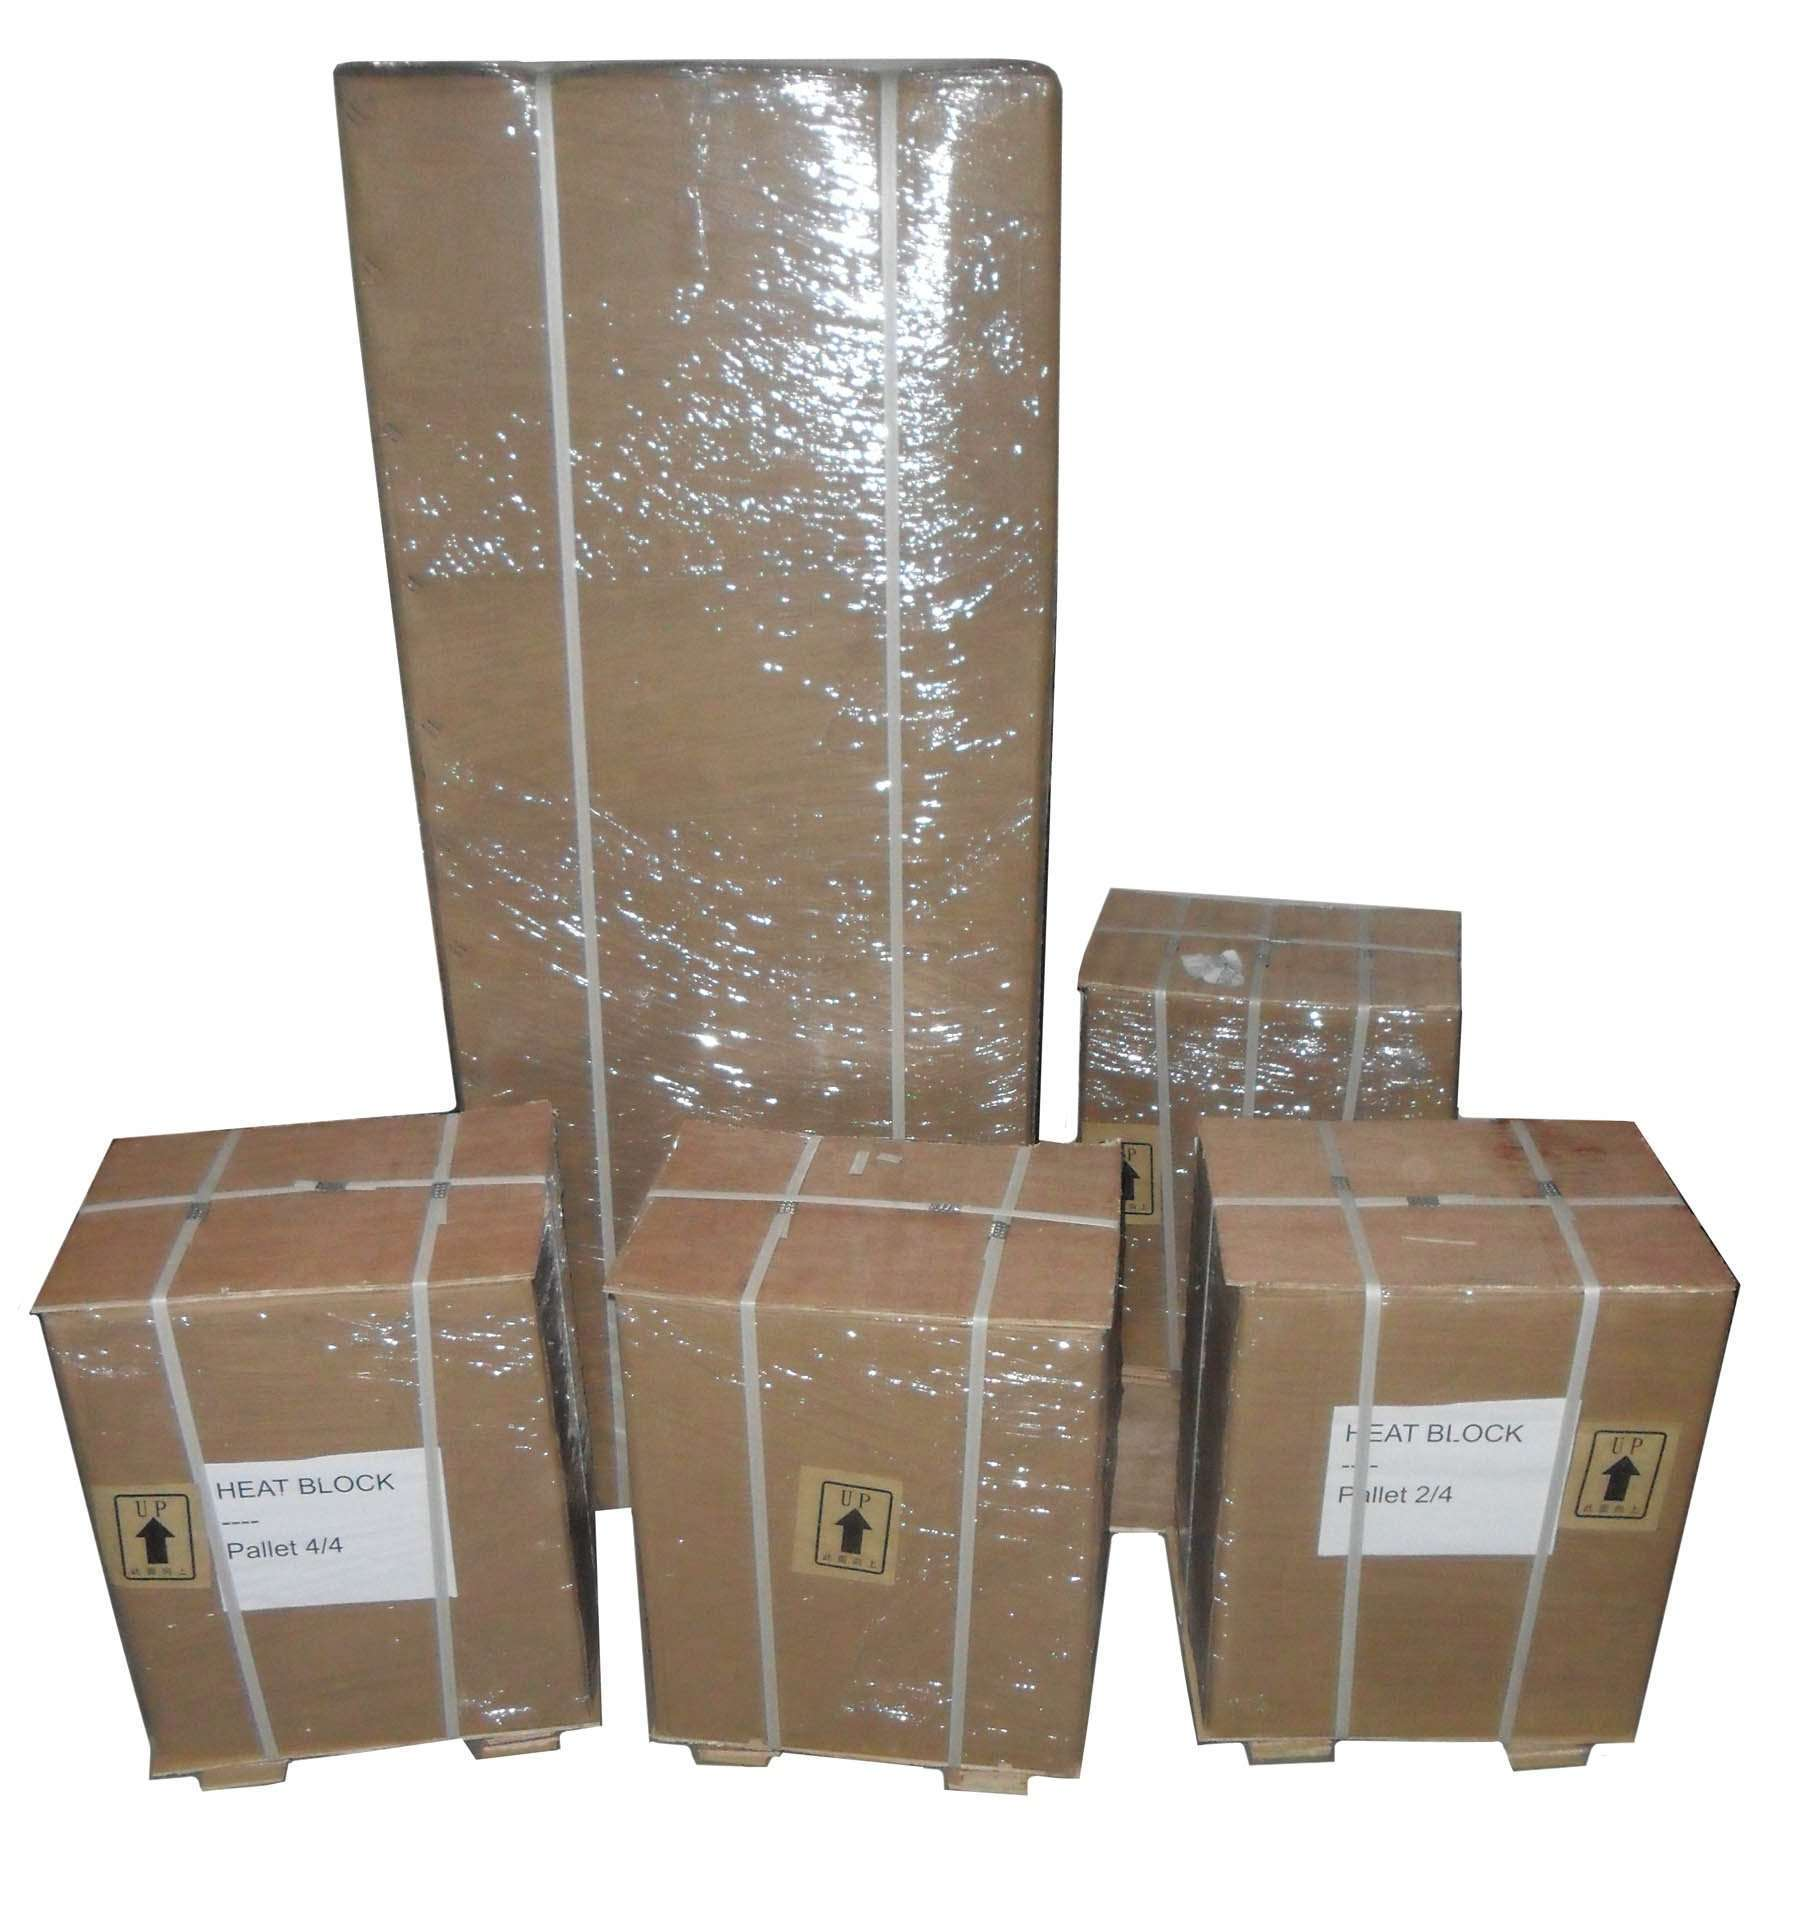 Thermodynamic heat block packing